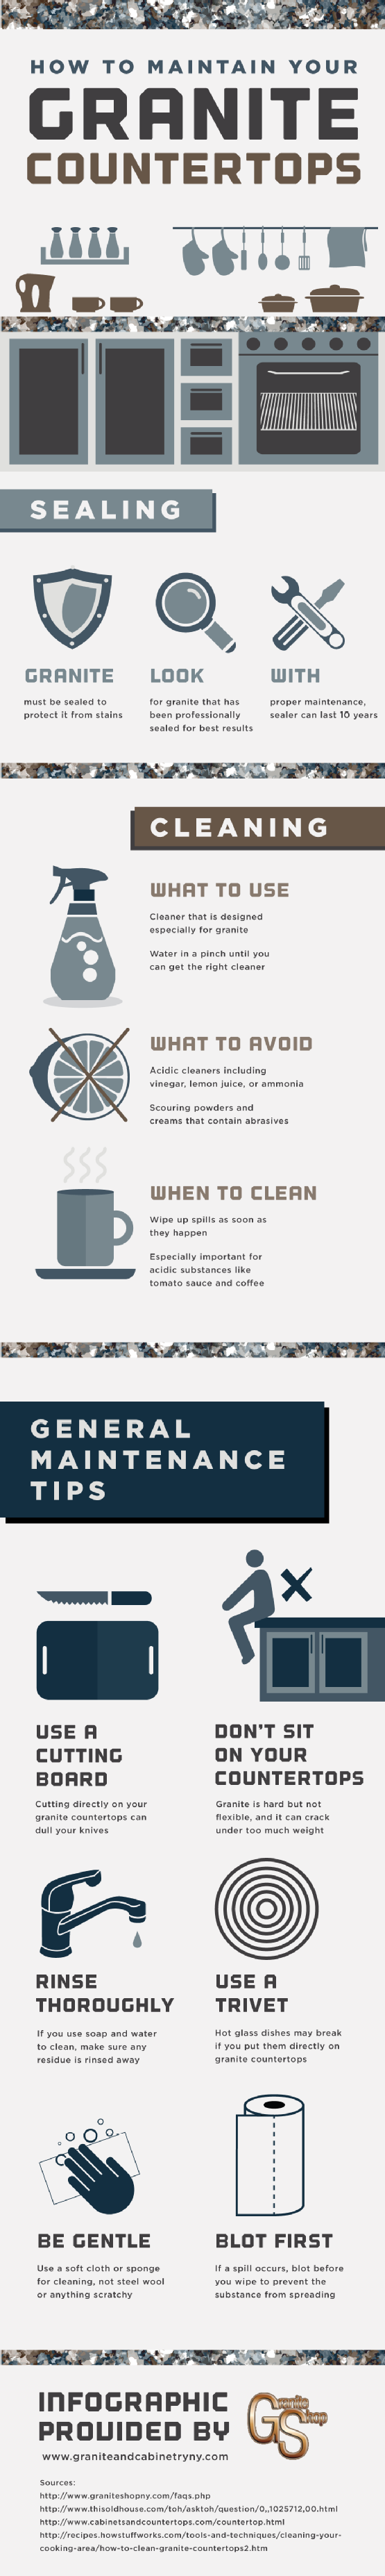 tudor menu template - how to maintain your granite countertops infographic